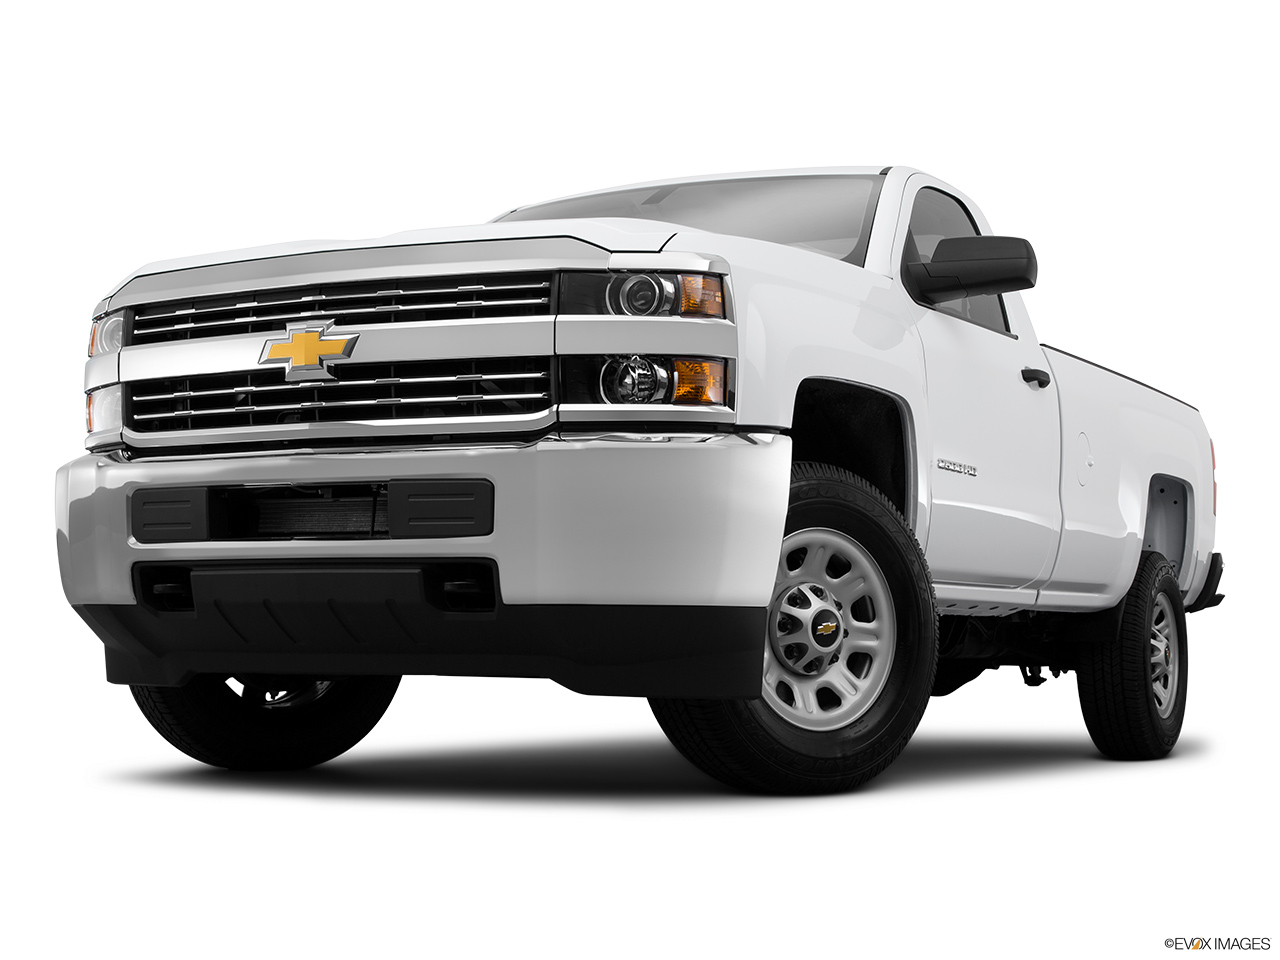 2500Hd High Country >> 2015 Chevrolet Silverado 2500HD Built After Aug 14 2WD Crew Cab 167.7 High Country - Front angle ...